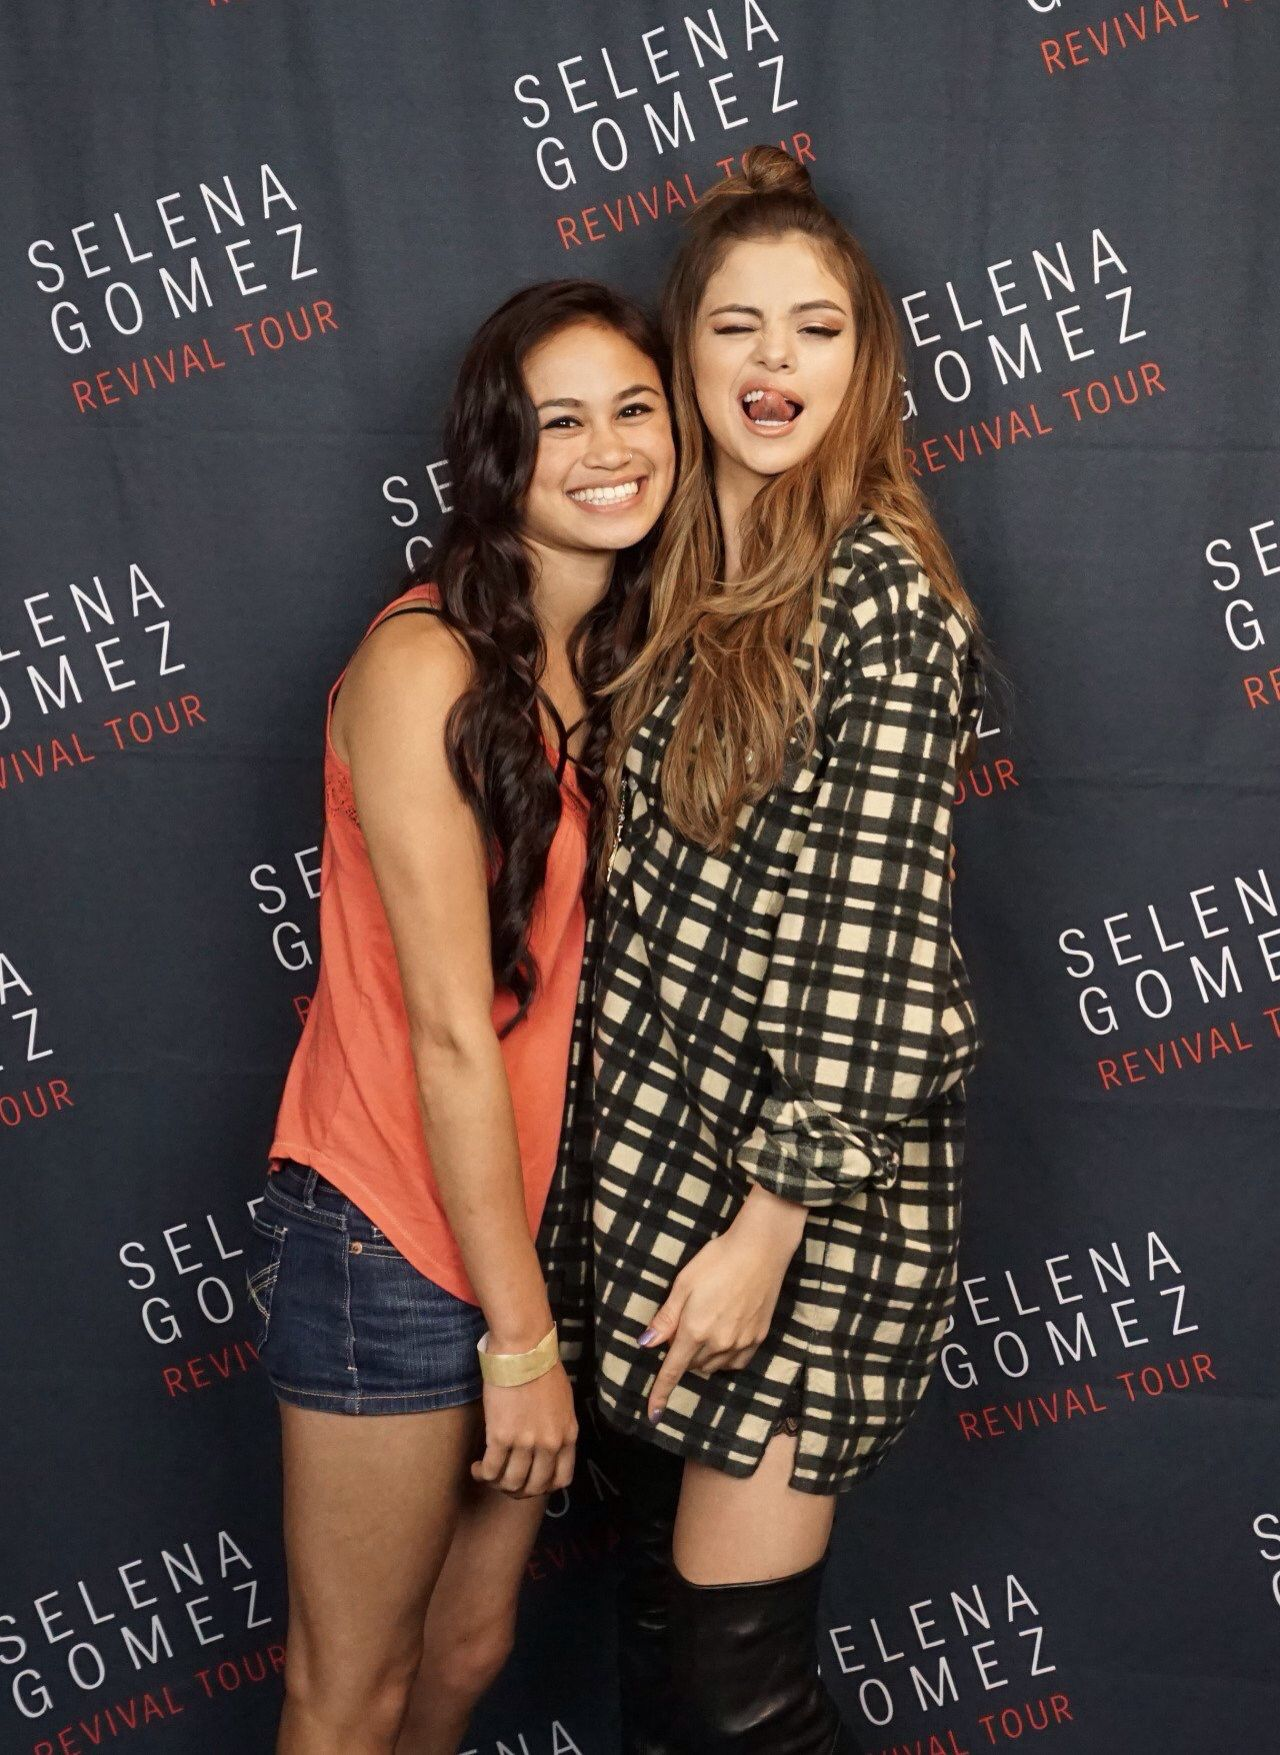 Pin By Sweety Jangra On Revival Tour Meets And Greets